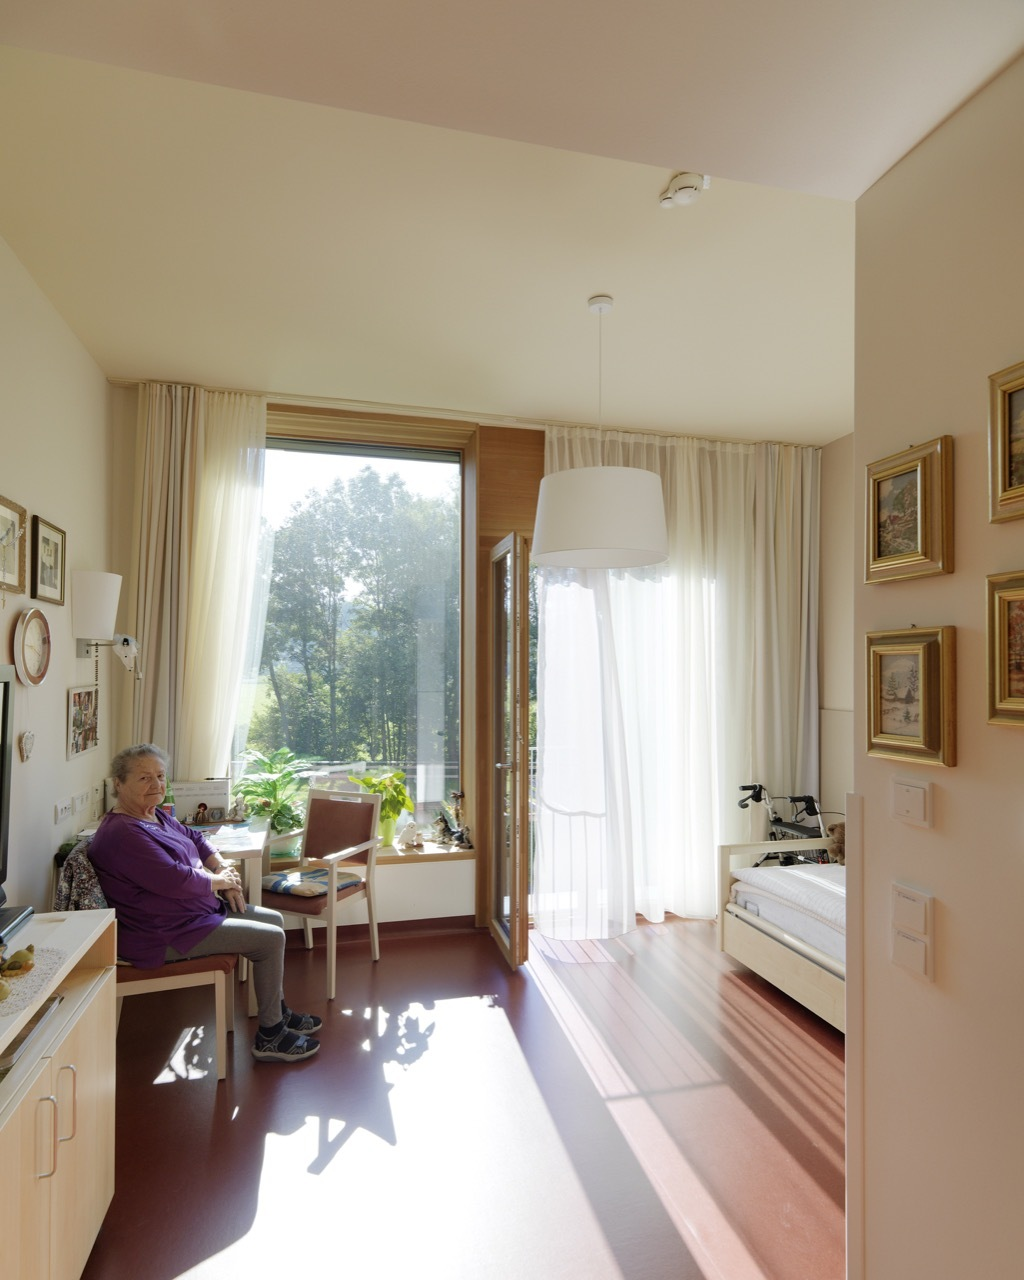 Home Design Ideas For Seniors: Gallery Of Residential Care Home Andritz / Dietger